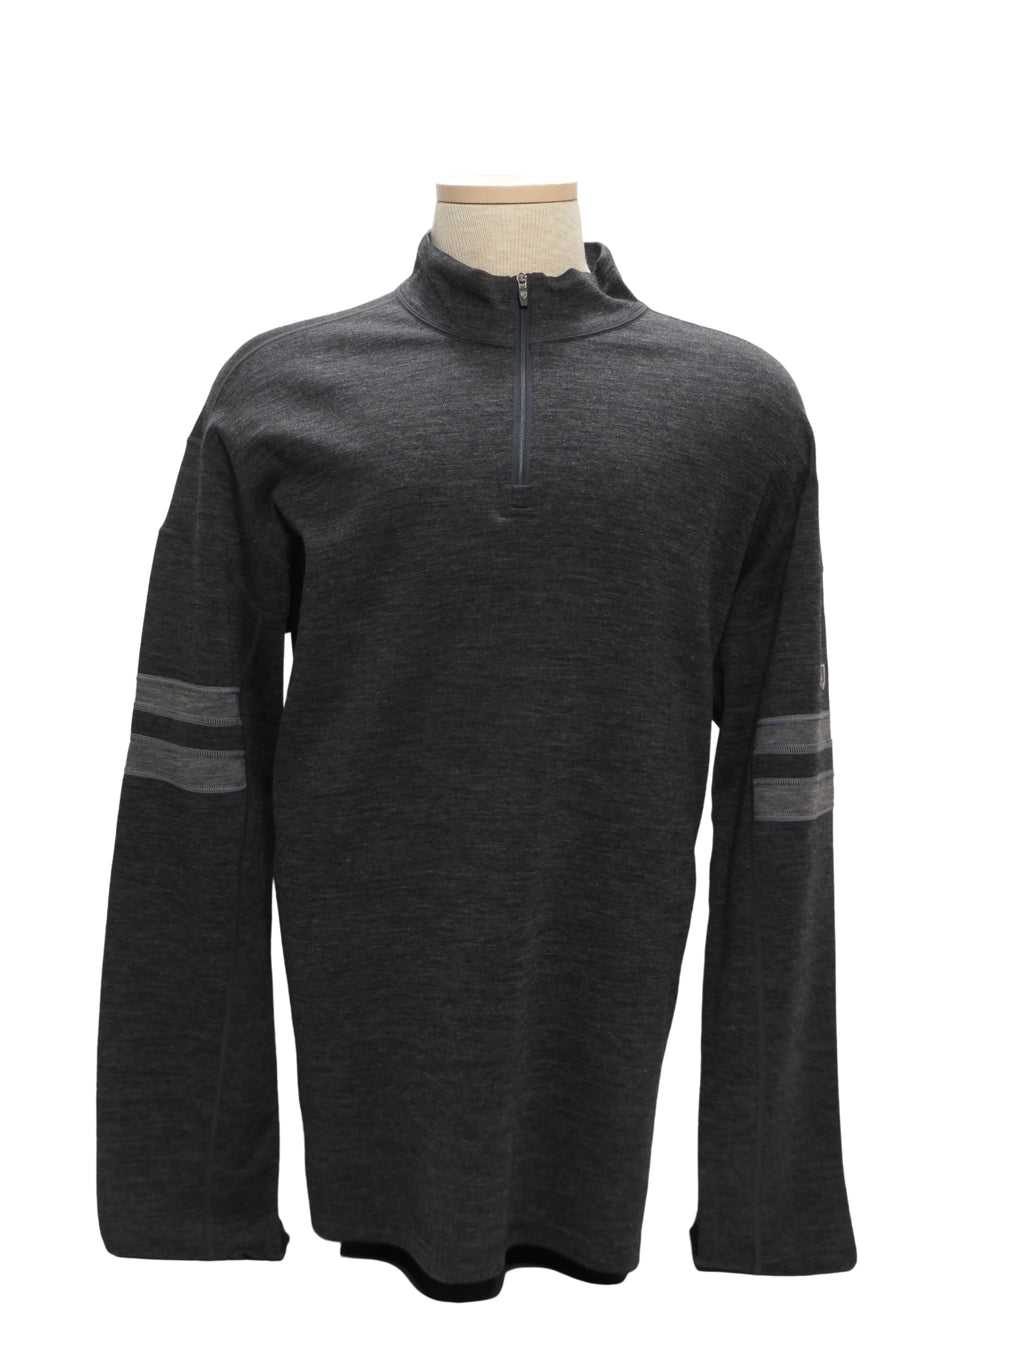 KUHL TEAM 1/4 ZIP MERINO WOOL SWEATER